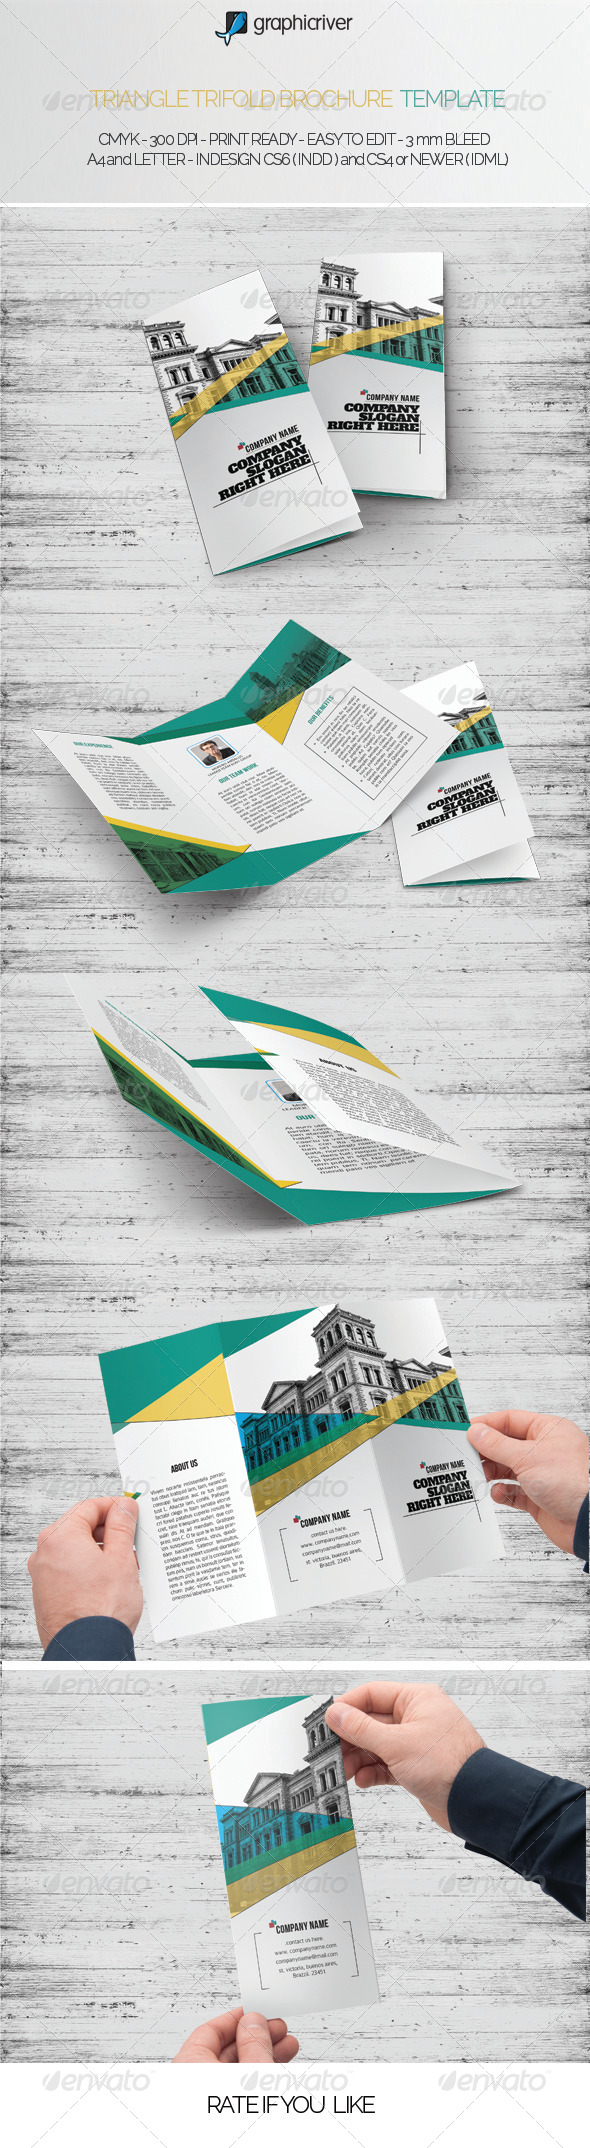 Triangle Trifold Brochure Template